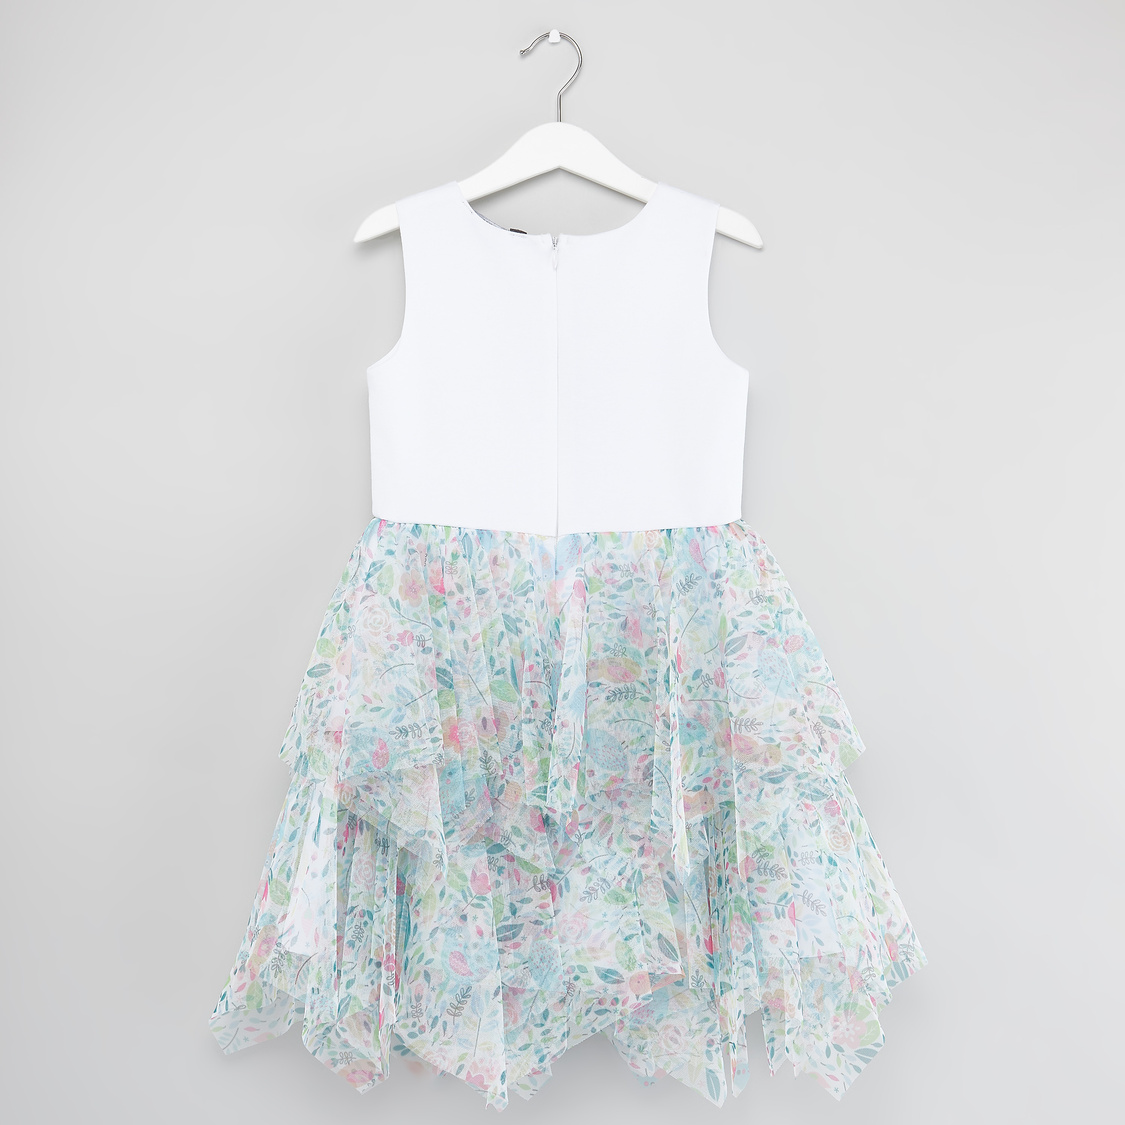 Printed Sleeveless Tiered Dress with Flower Applique